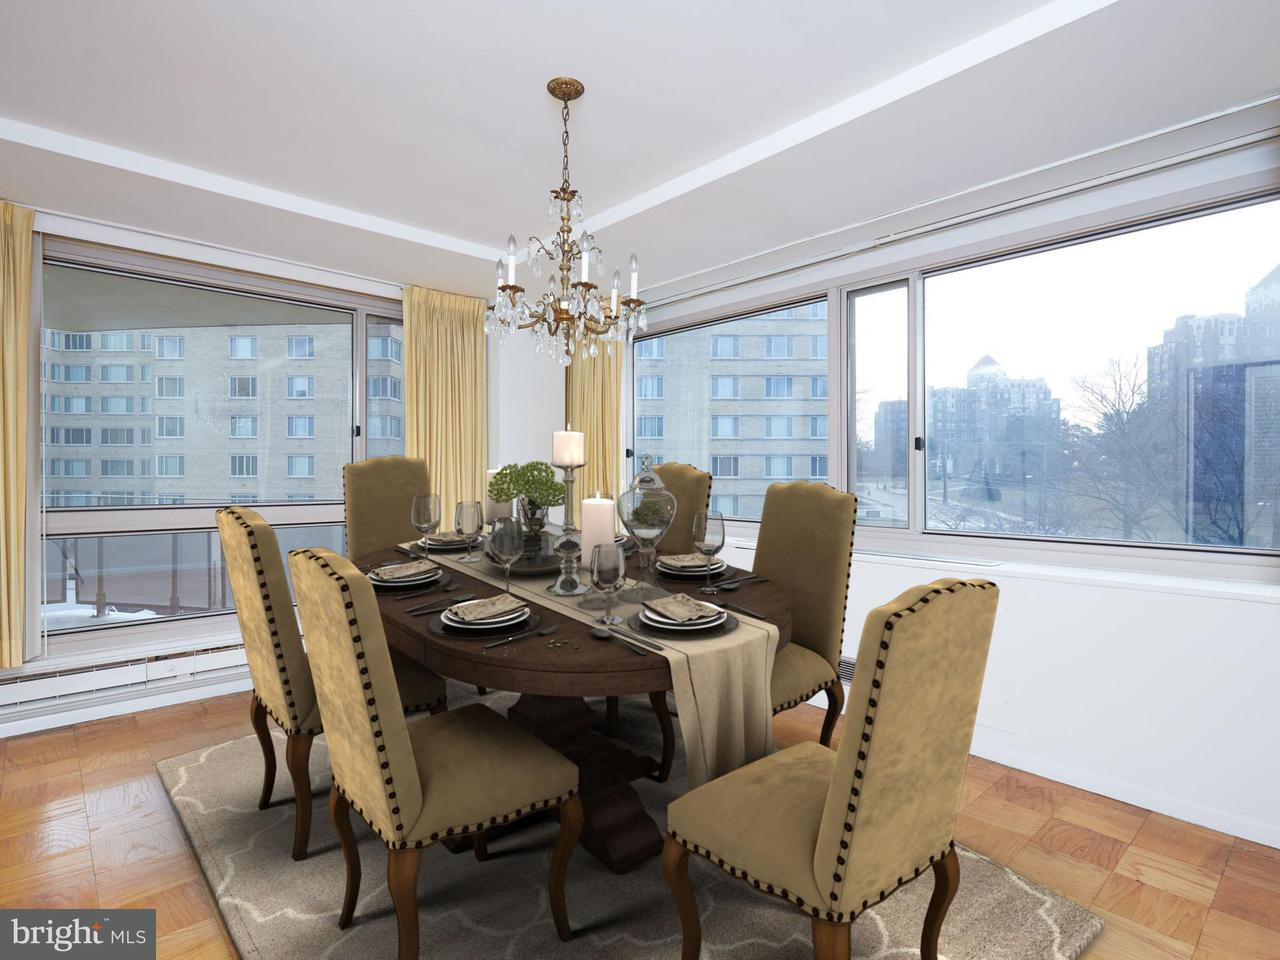 Additional photo for property listing at 4101 Cathedral Ave Nw #917 4101 Cathedral Ave Nw #917 Washington, Distretto Di Columbia 20016 Stati Uniti